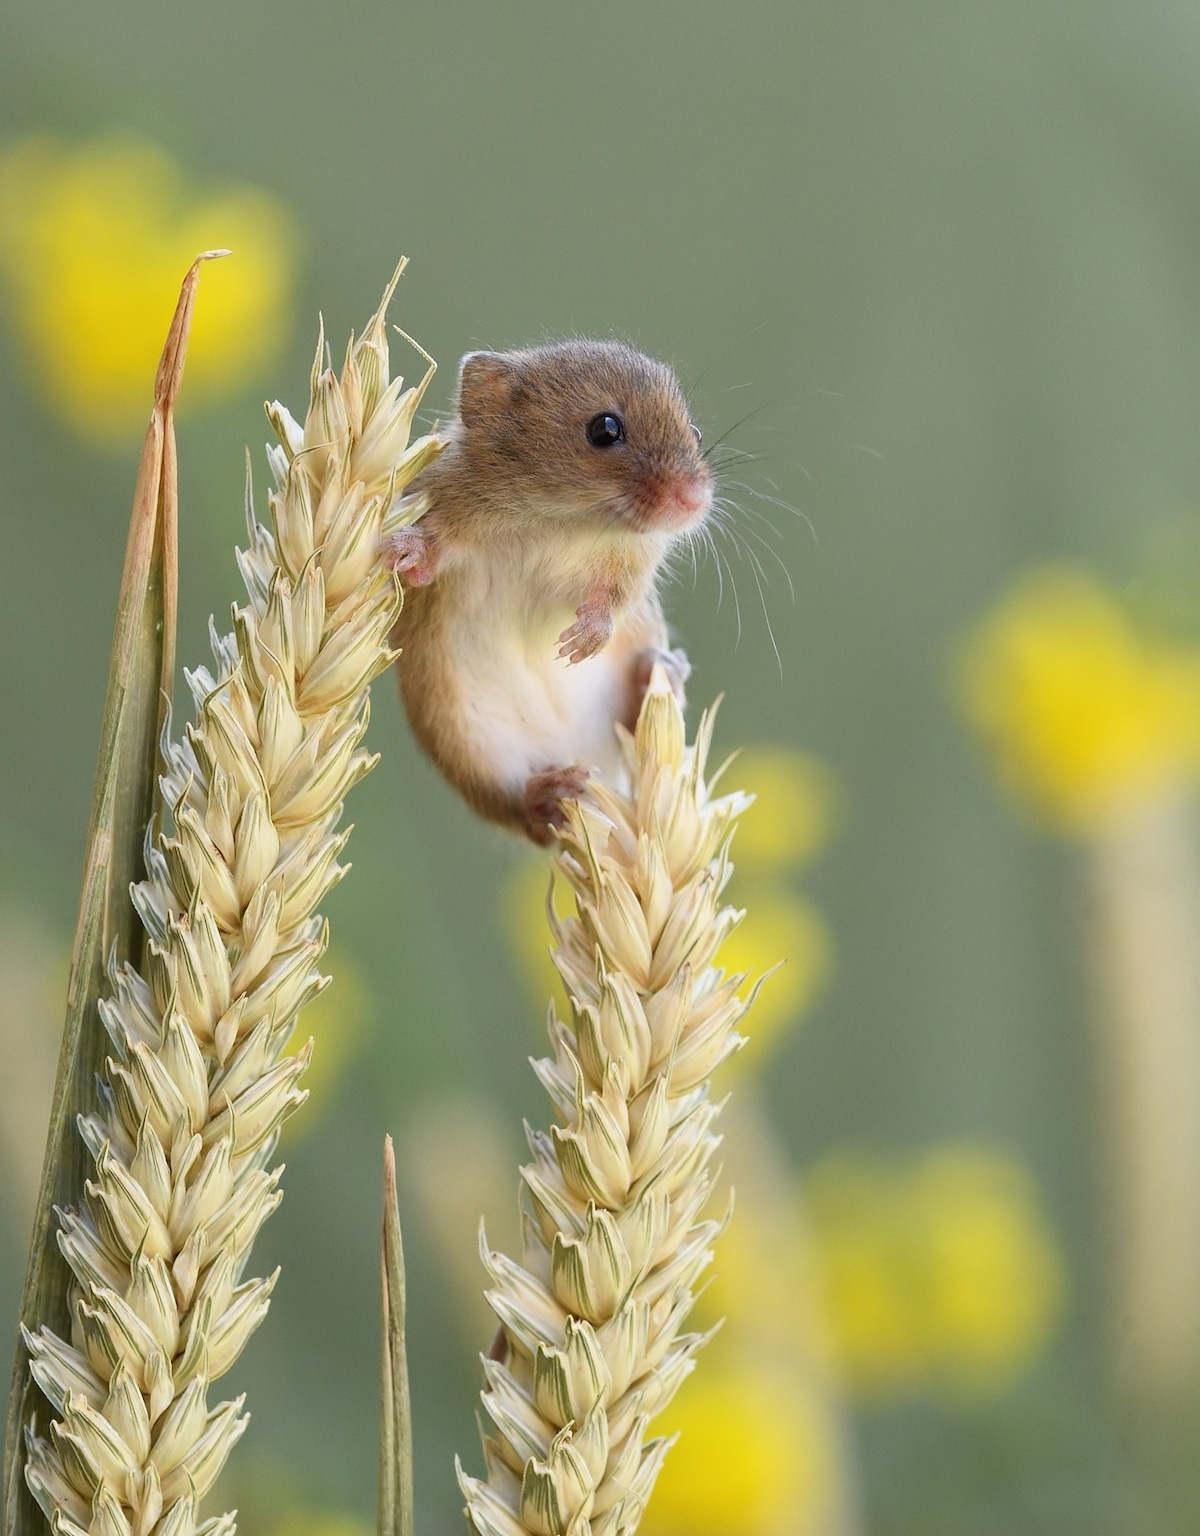 Harvest Mouse Balancing on Wheat